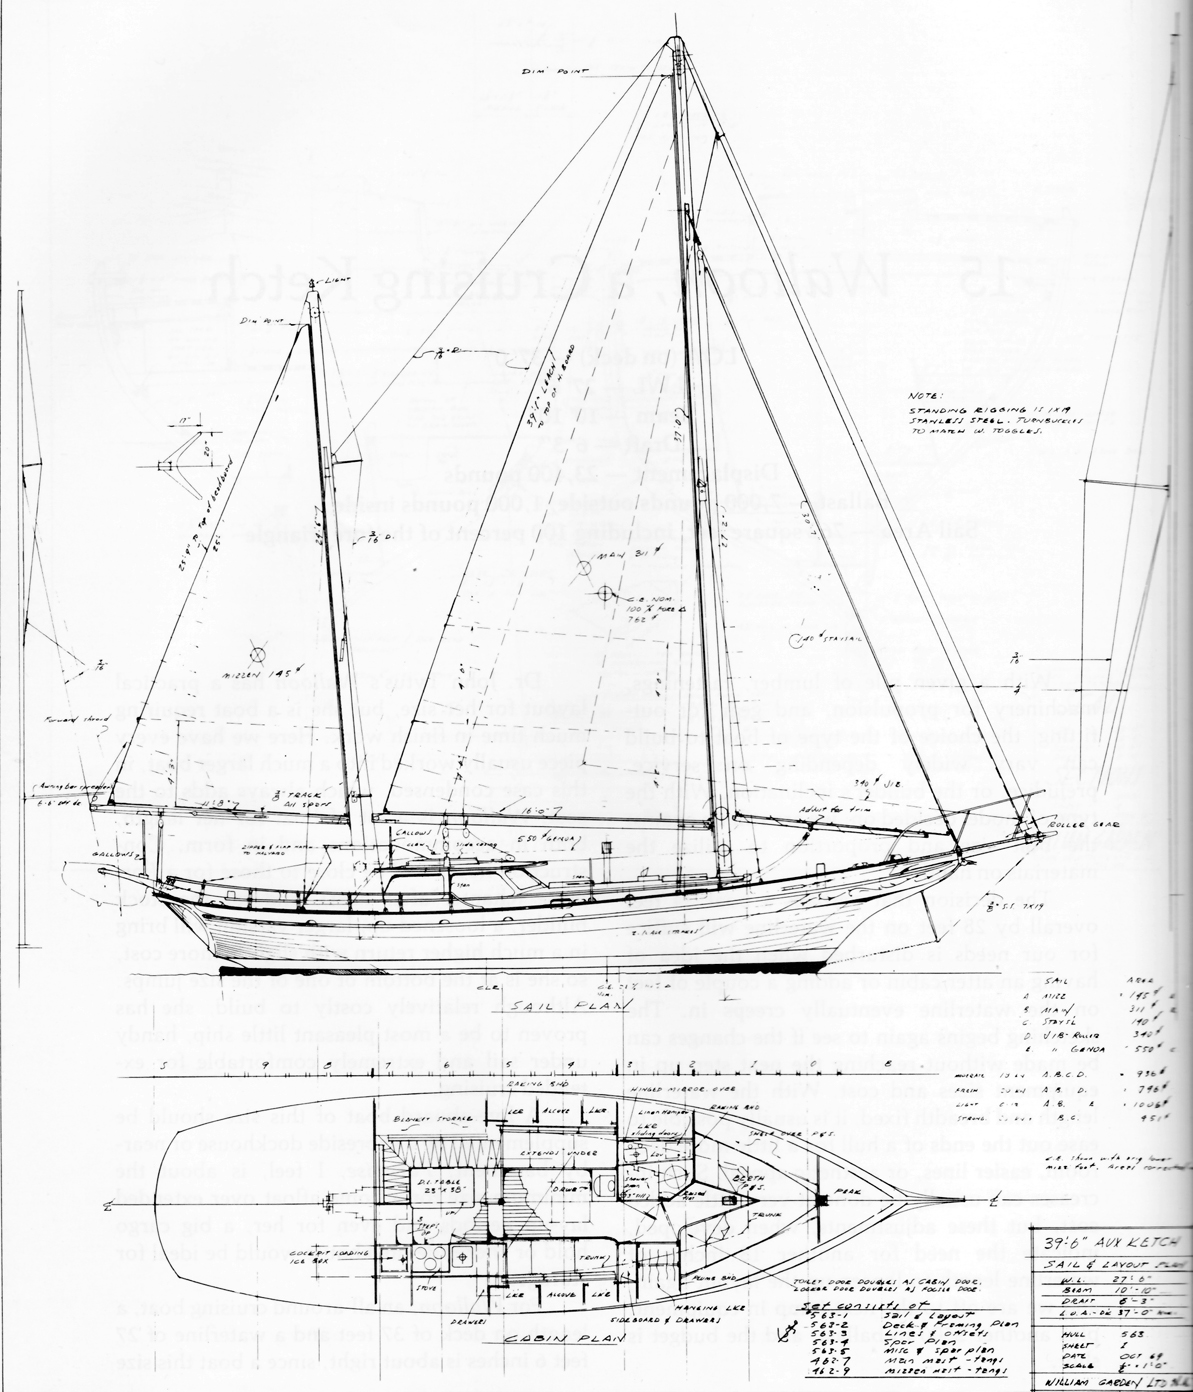 Walloonketch Boat Pilothouse Designs on boat center console designs, boat cabin designs, boat custom designs, boat trailers designs, boat launch designs, boat deck designs, boat galley designs, boat sail designs,